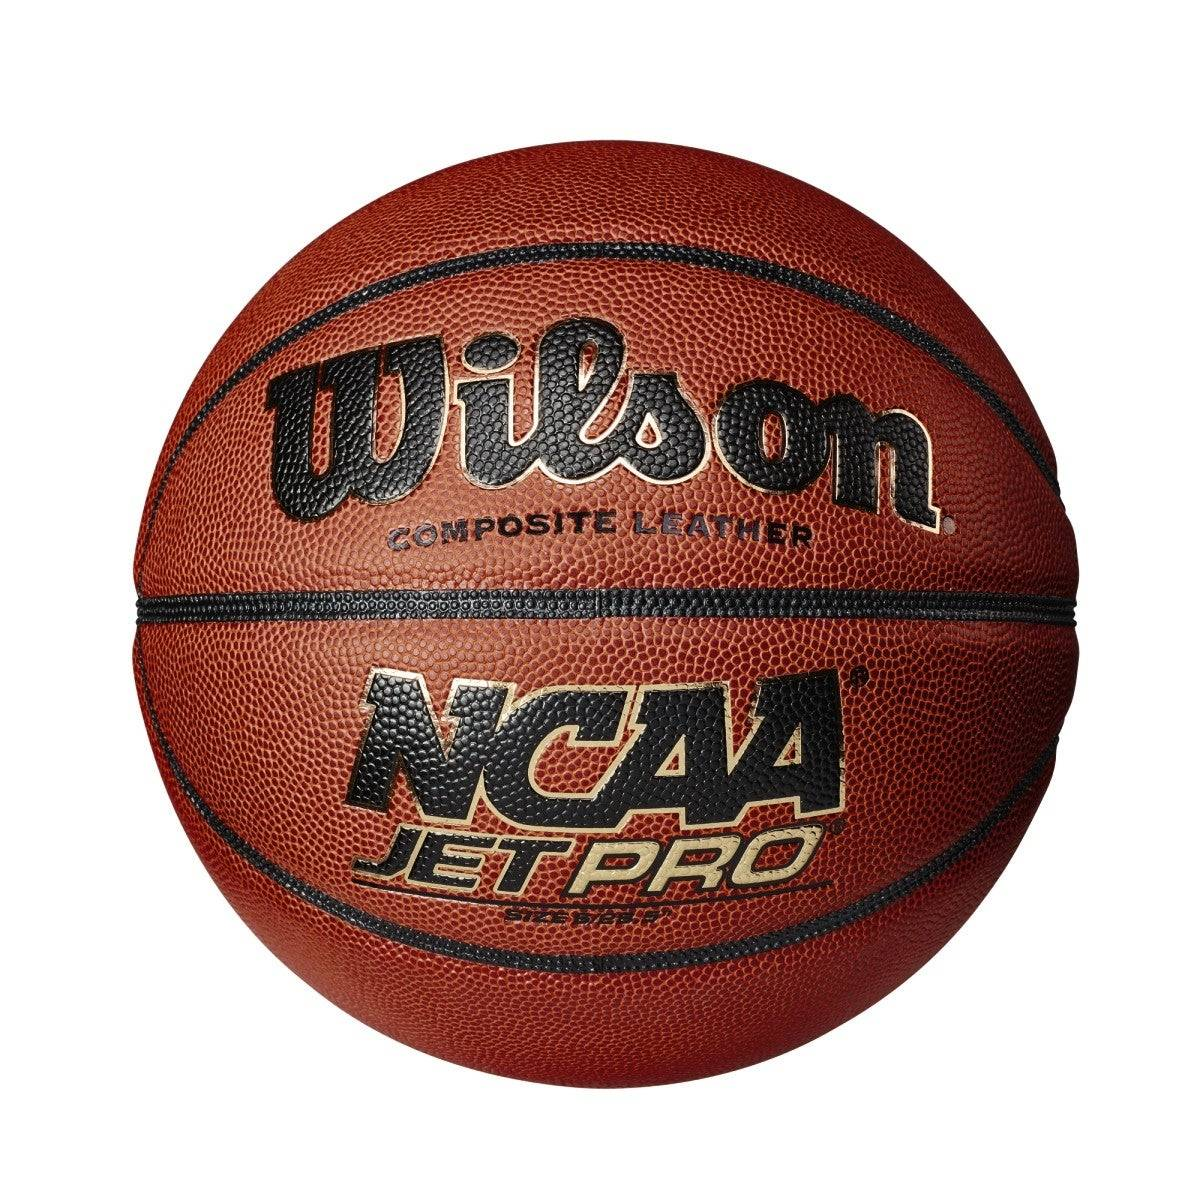 """Wilson NCAA Jet Pro Basketball in Brown - Size: Official - 29.5""""  - Unisex - Brown - Size: Official - 29.5"""""""